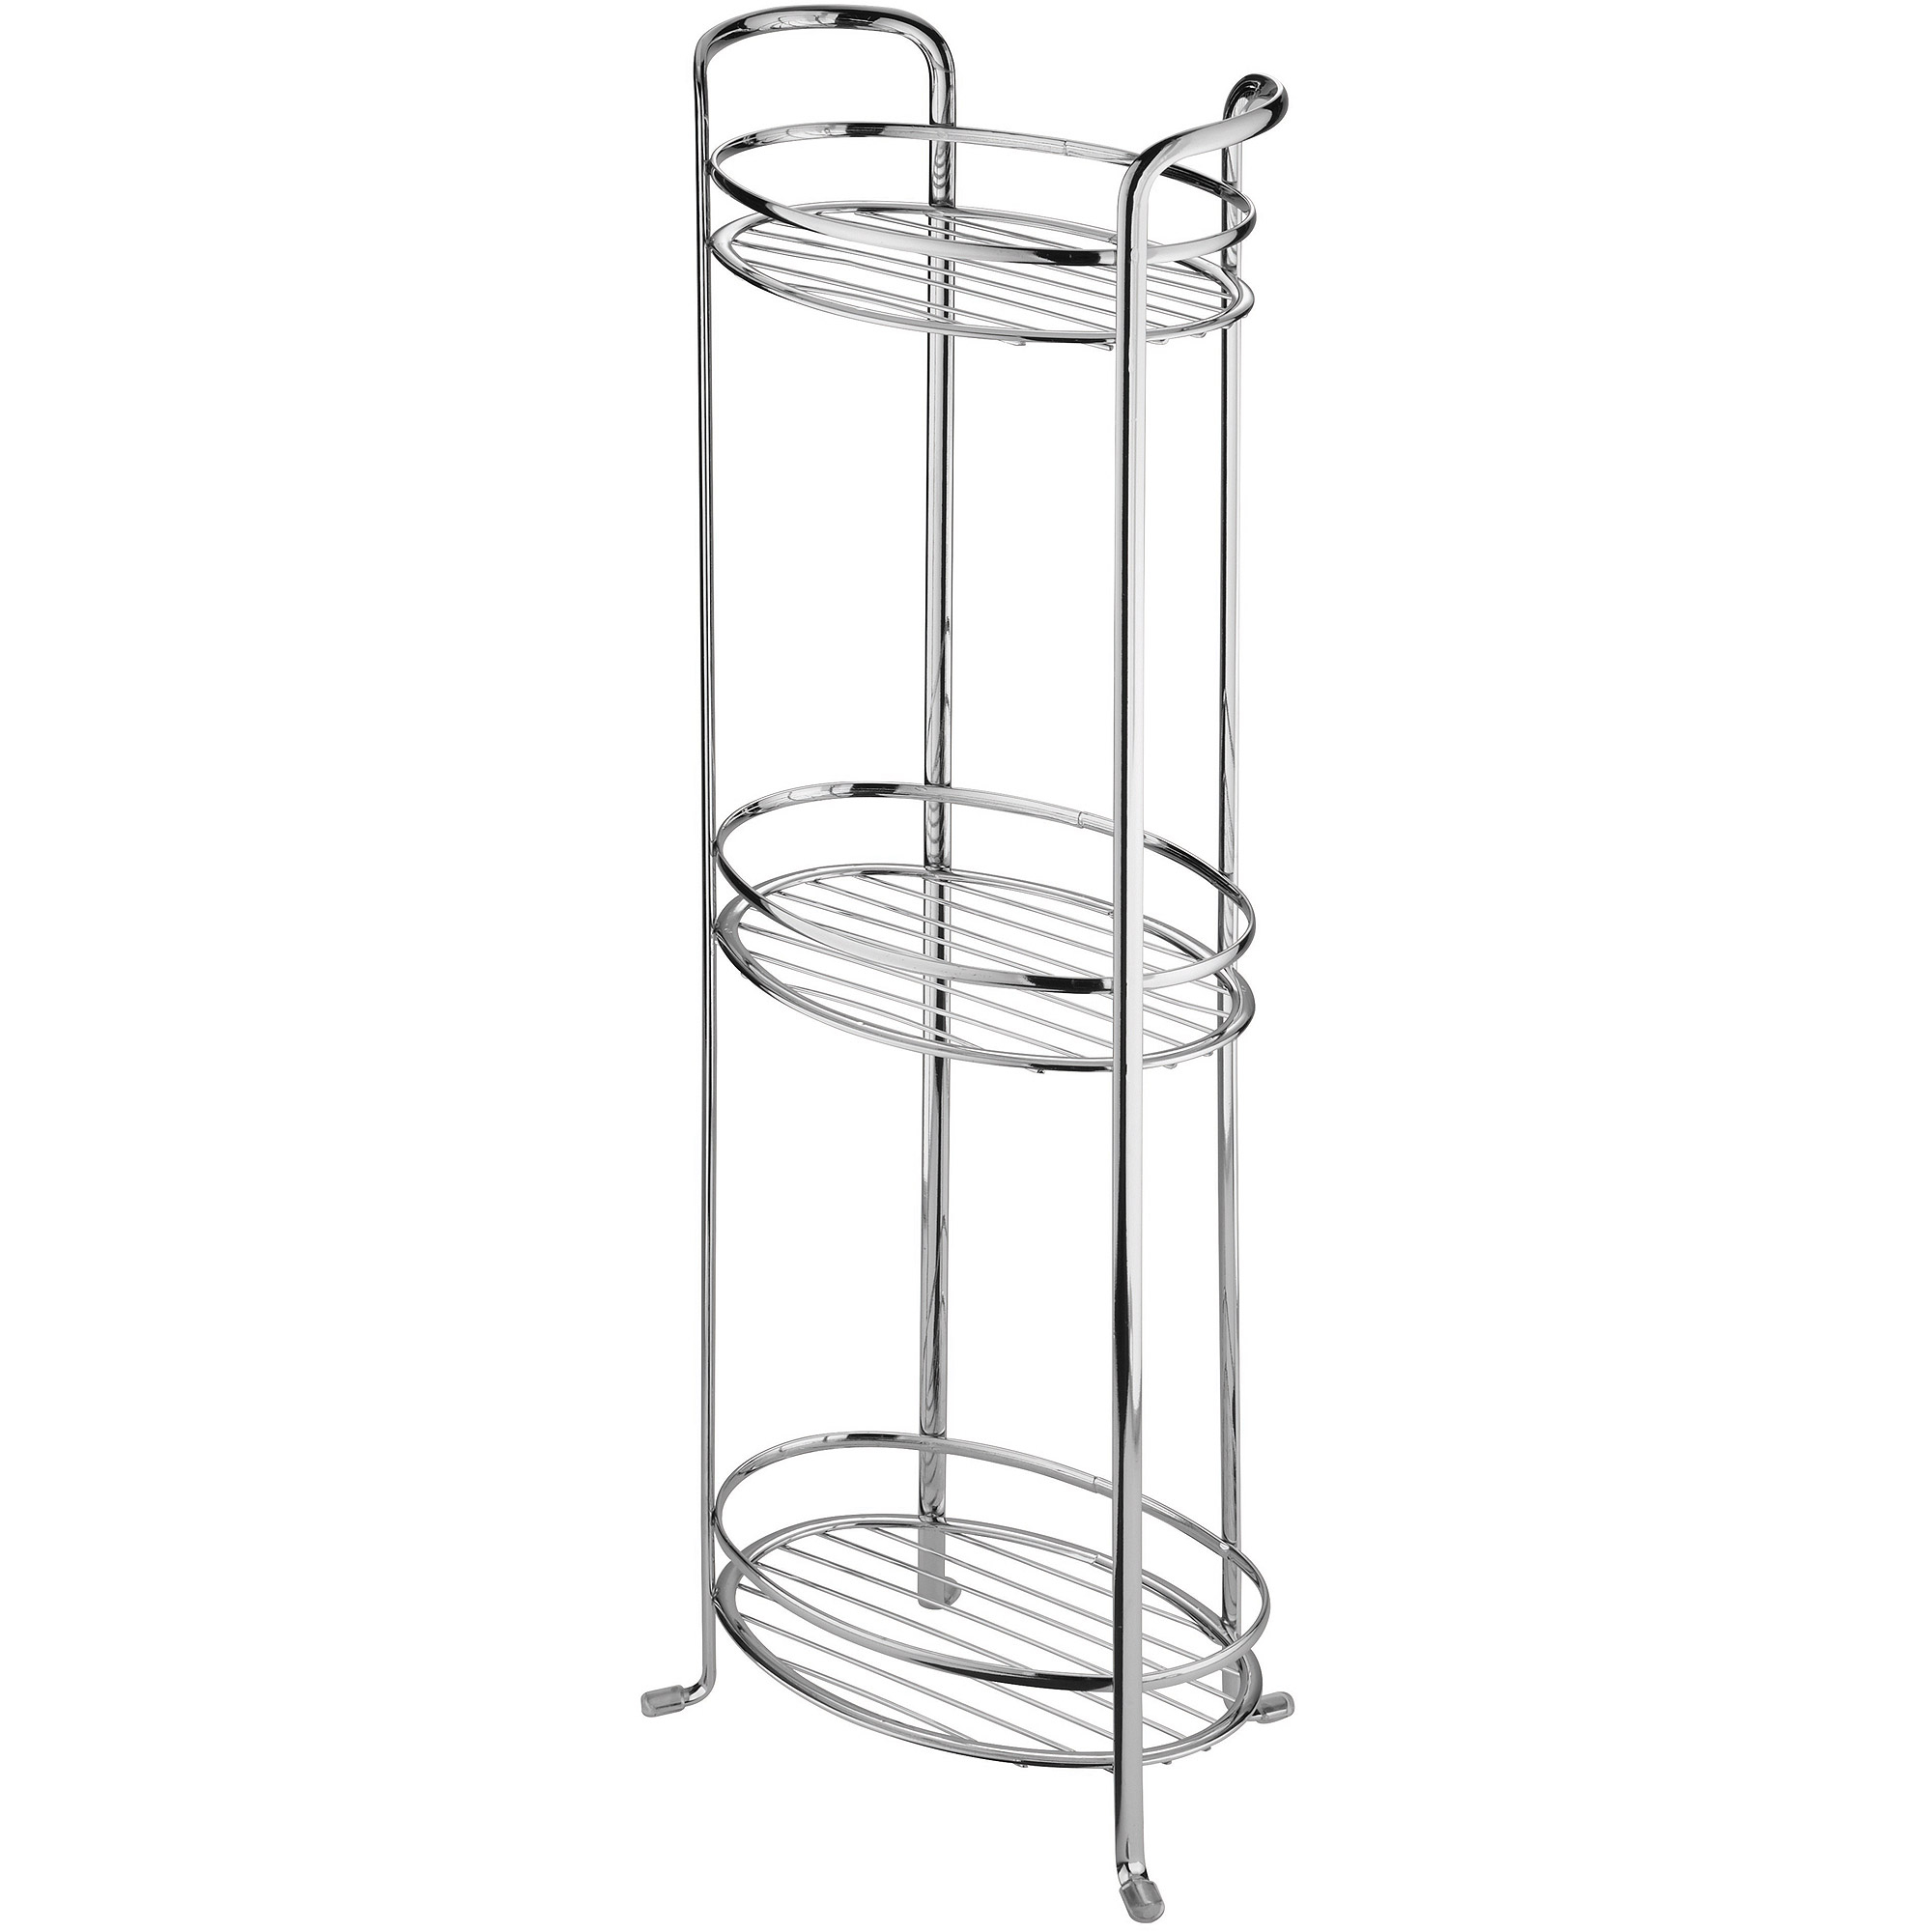 Interdesign Axis Free Standing Bathroom Storage Shelves For Towels Soap Candles Tissues Lotion Accessories 3 Tier Chrome inside size 2000 X 2000